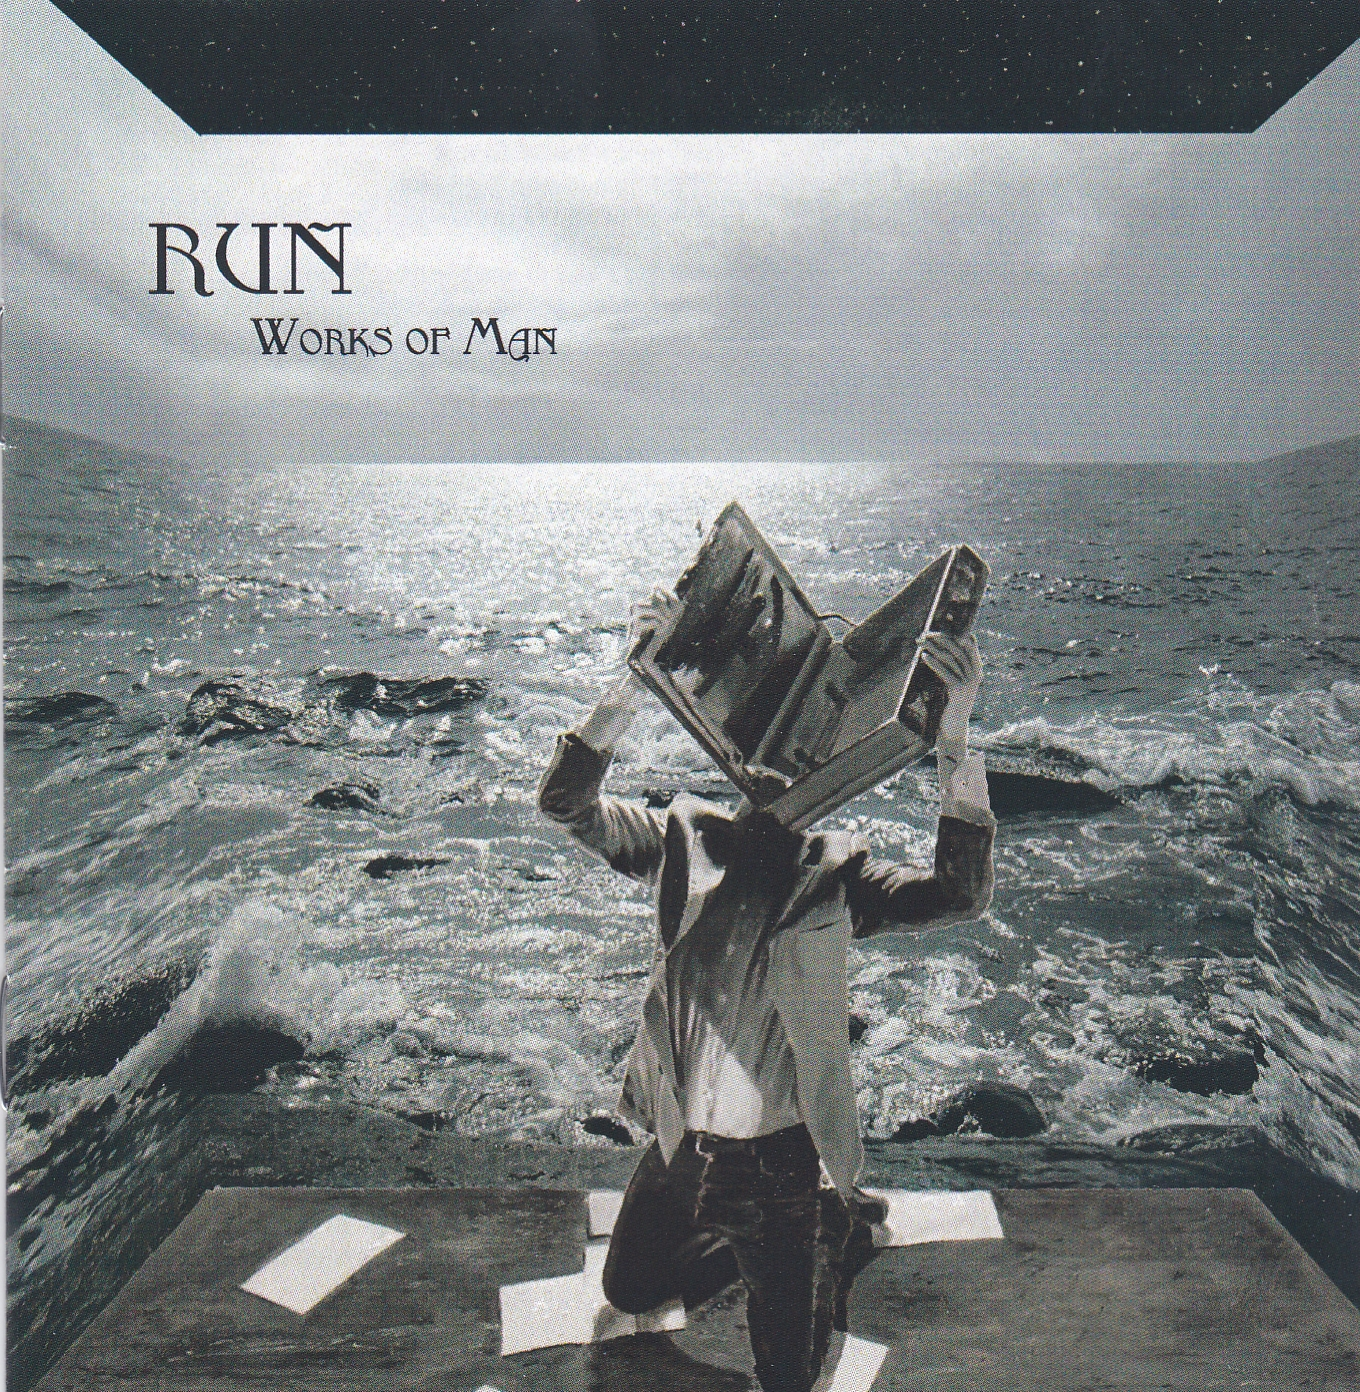 Run: Works of Man (KSV-001, 2019). JUST RELEASED! Available from our shop